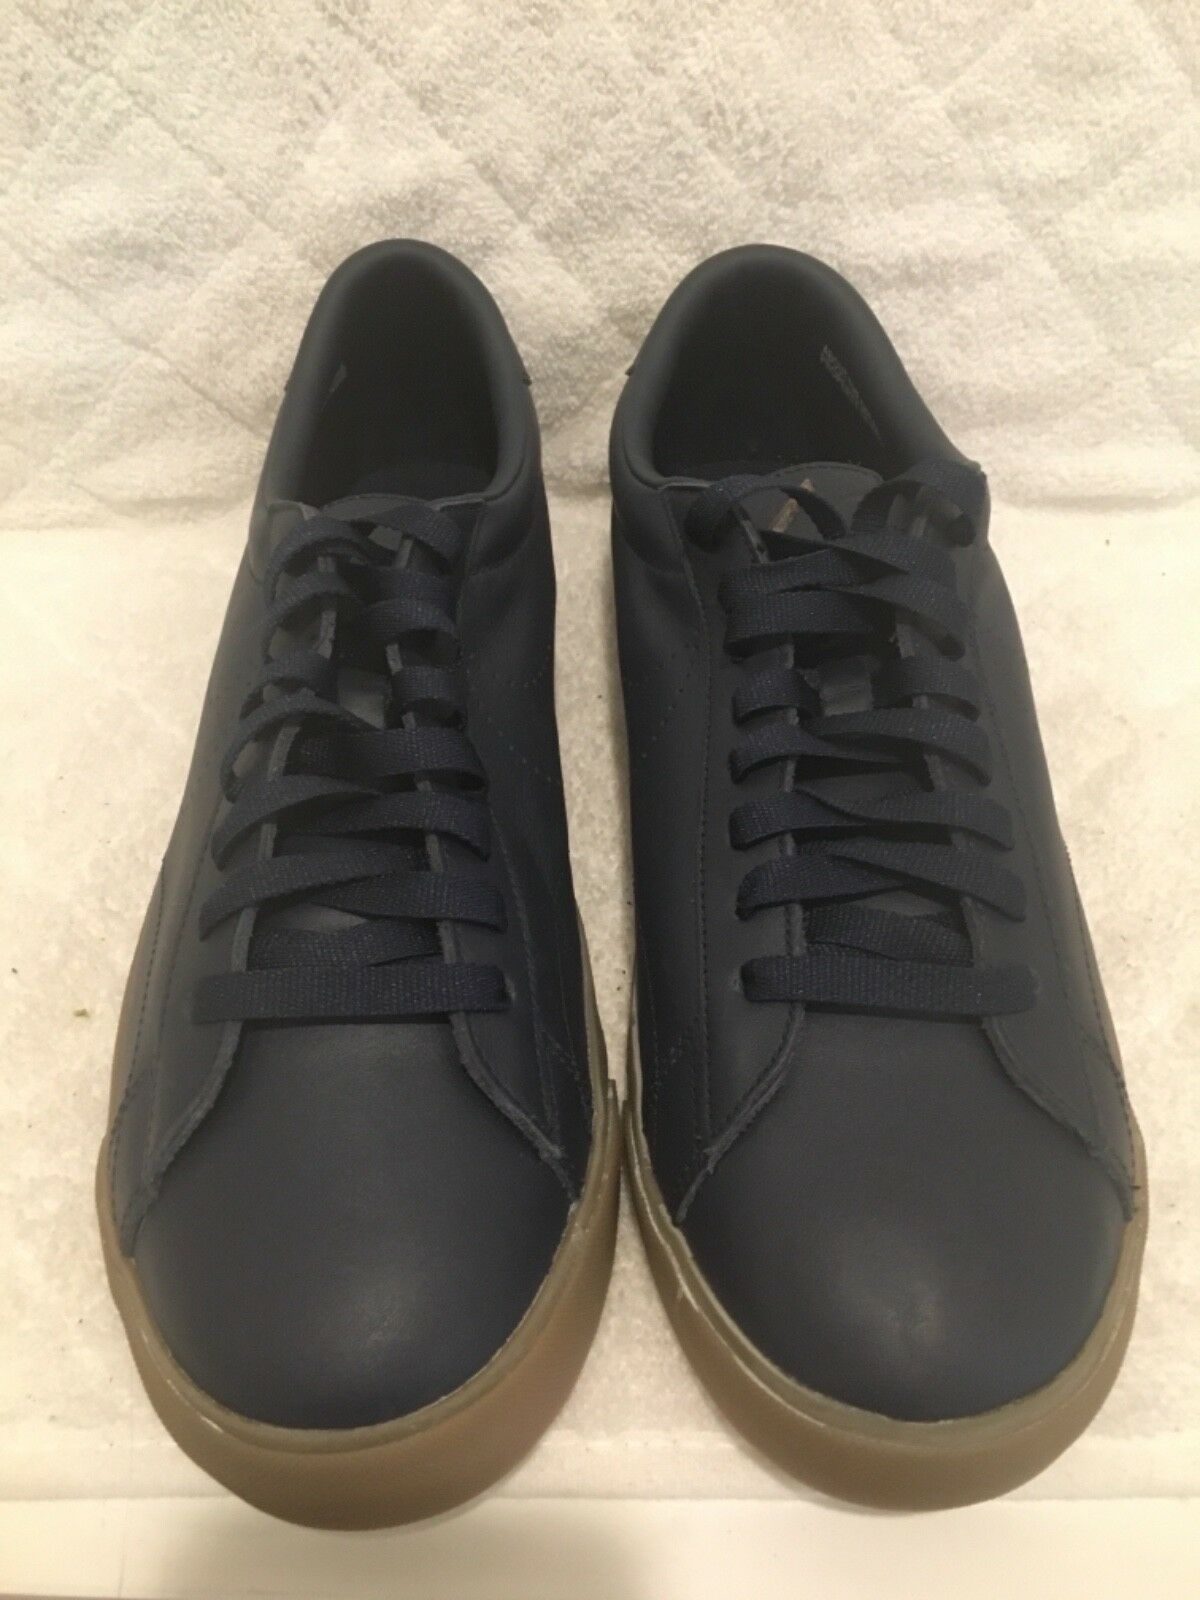 NIKE NAVY BLUE ERIC KOSTON ALL LEATHER  SHOESWITH LOGO NWT SNEAKERS US SIZE 11.5